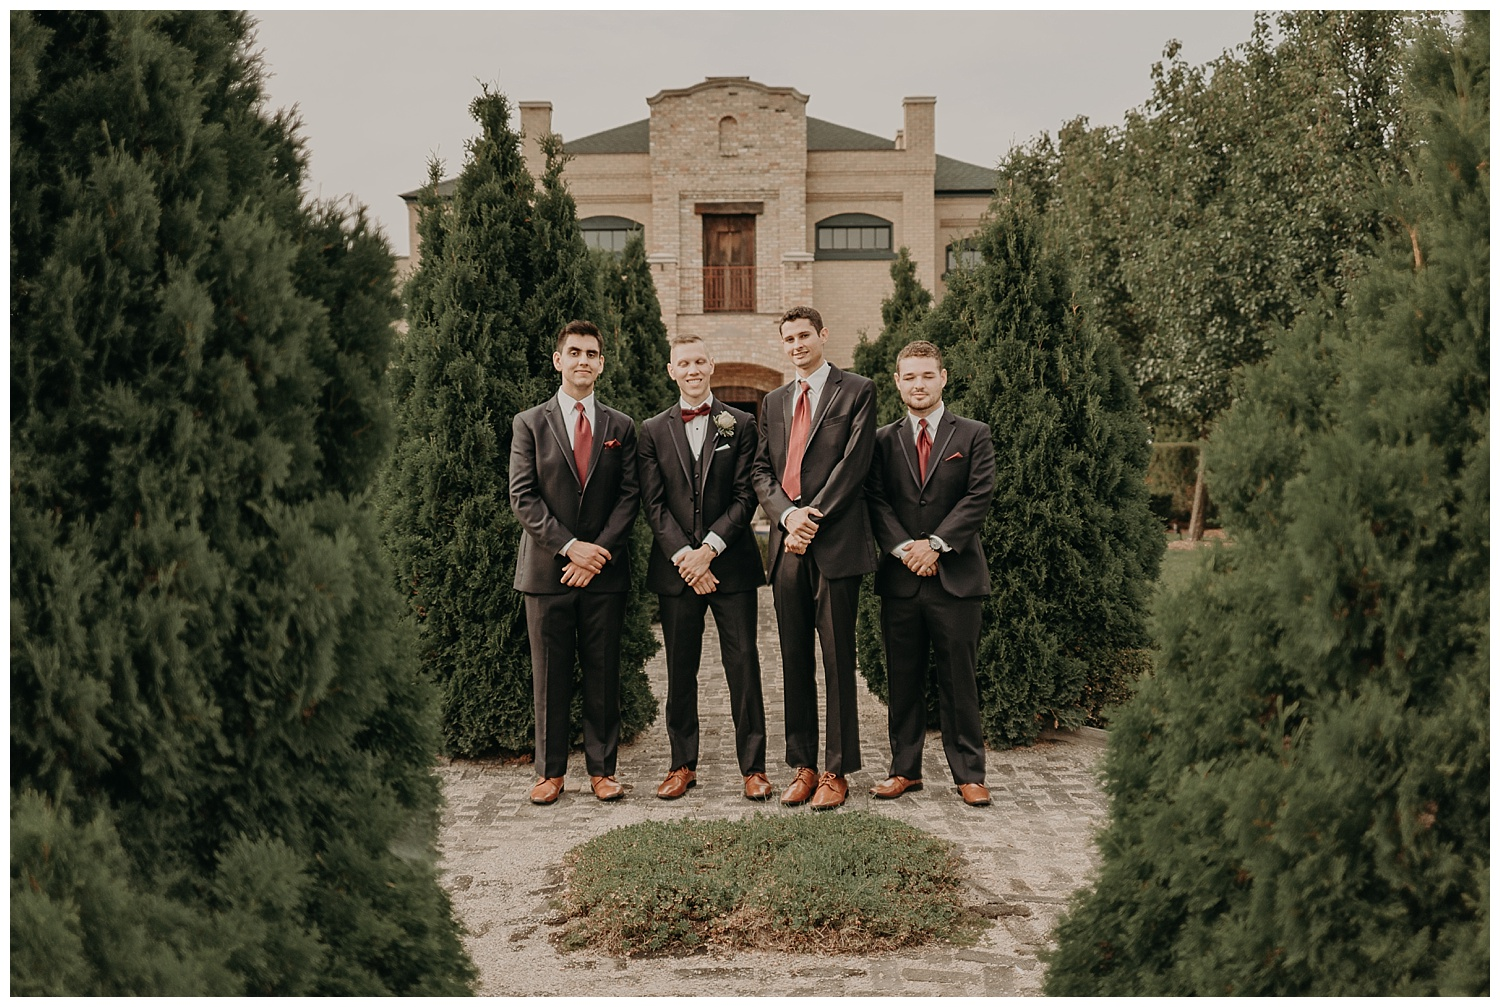 Katie Marie Photography | Hamilton Ontario Wedding Photographer | Kitchener Wedding Photographer | Hacienda Sarria Wedding | Cambridge Wedding_0159.jpg